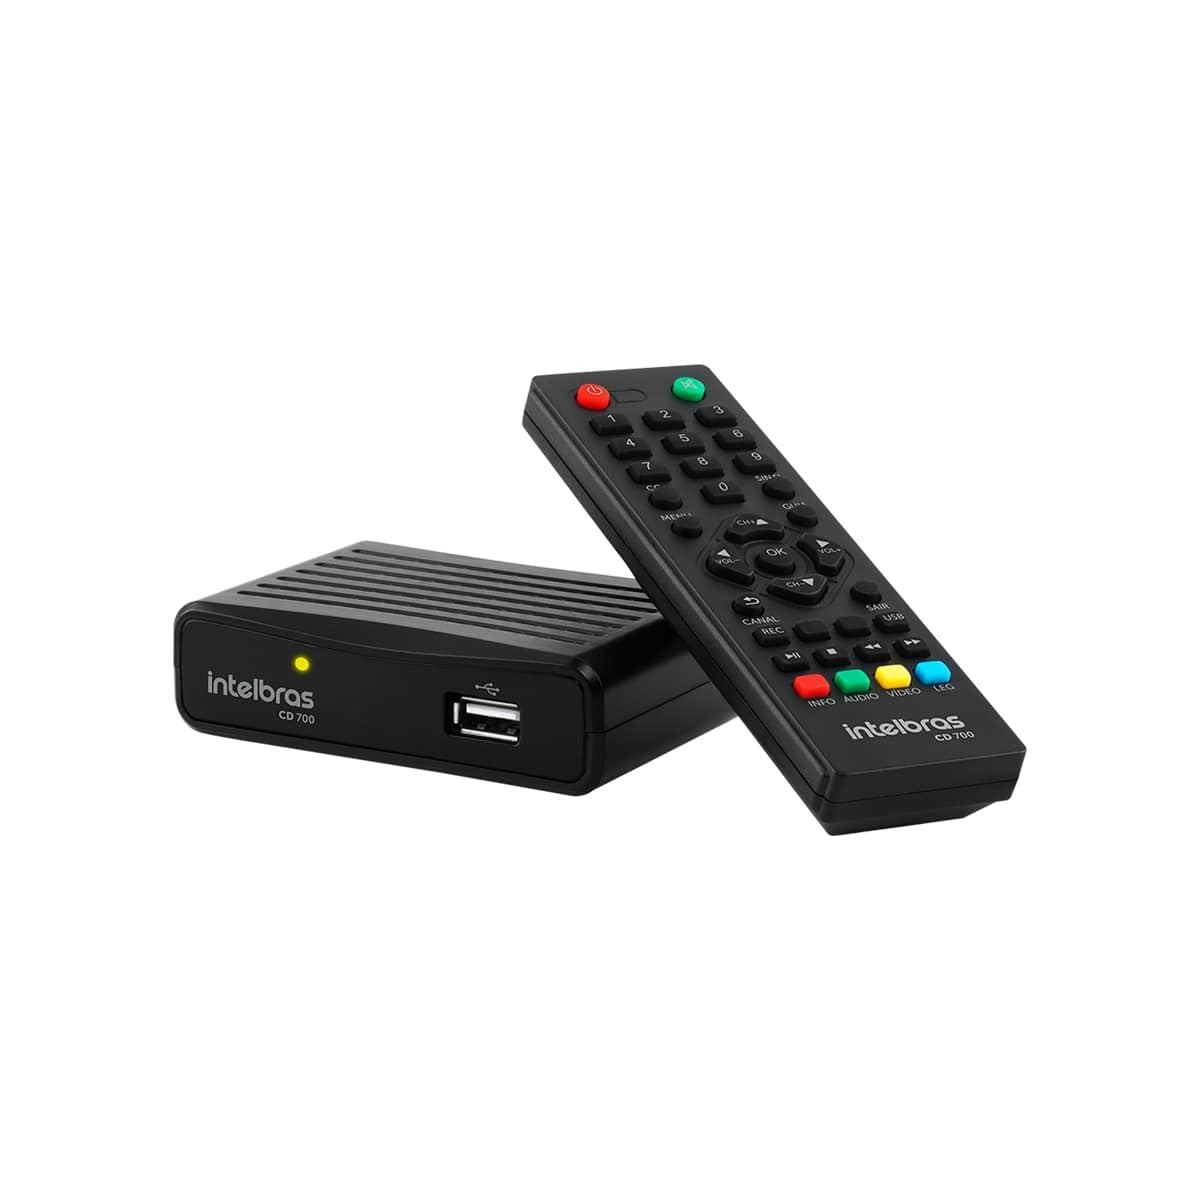 Conversor Digital de TV Intelbras com Gravador CD 700